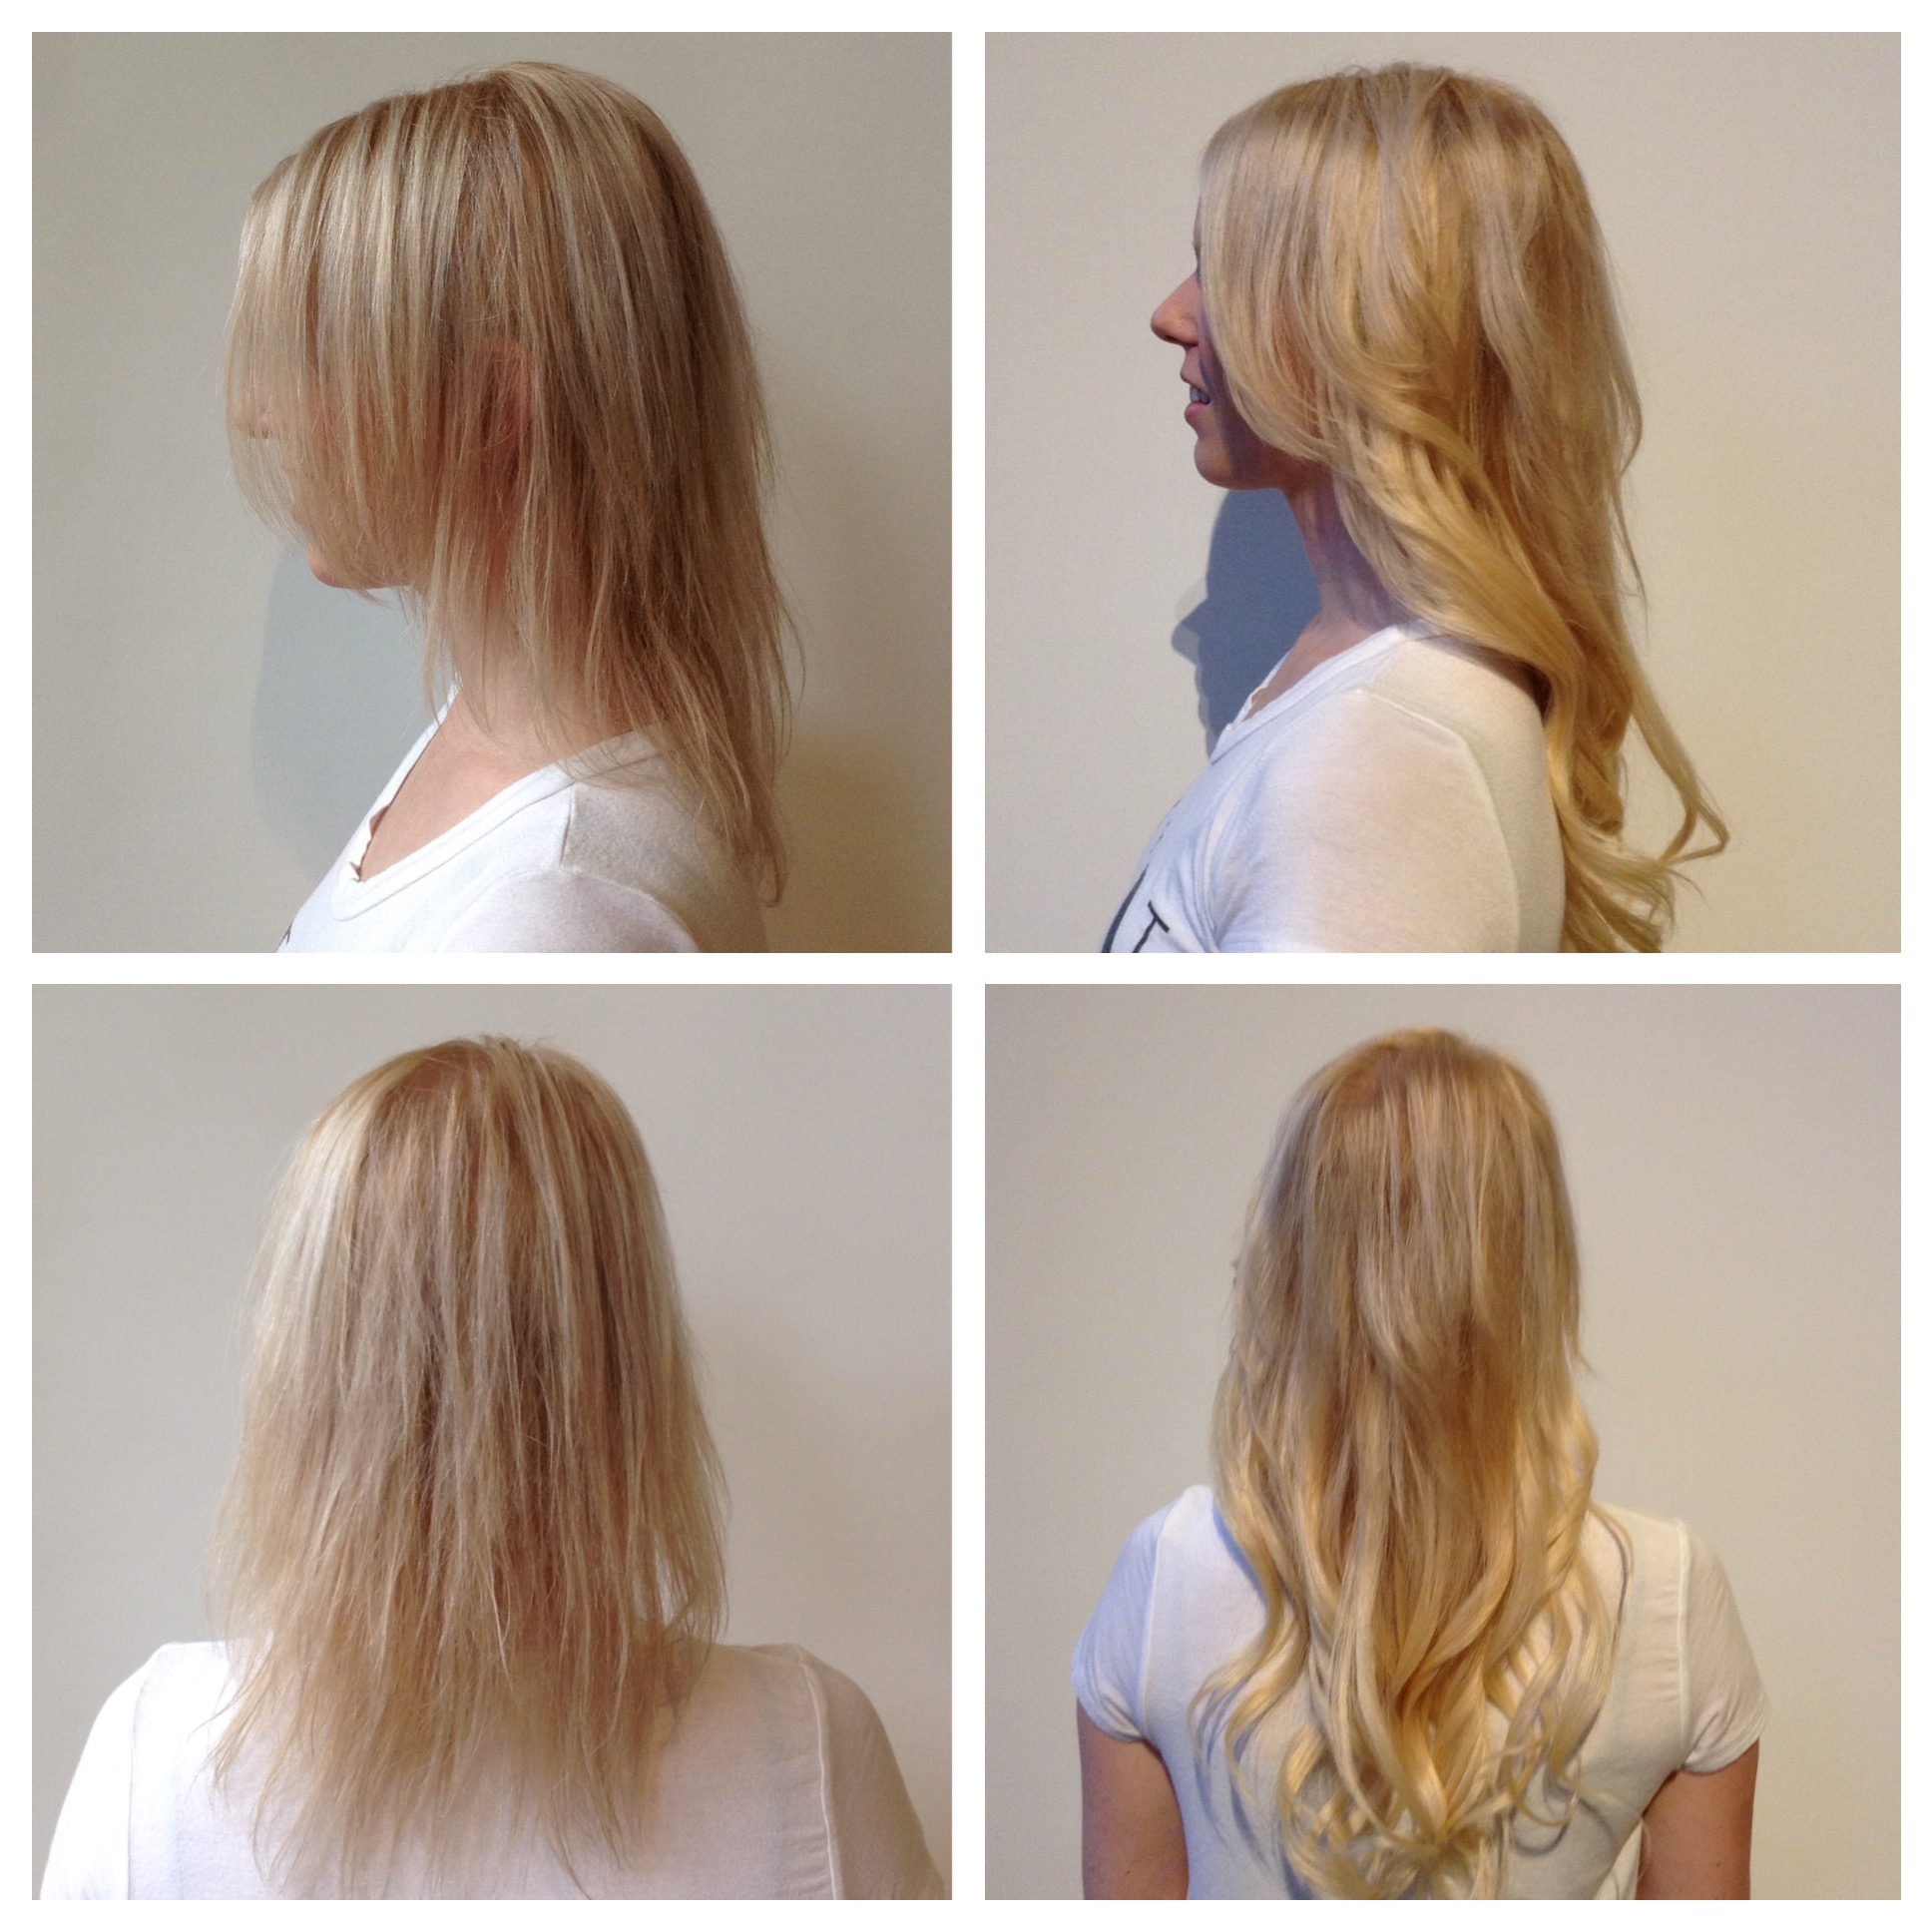 Easihair Pro Extensions